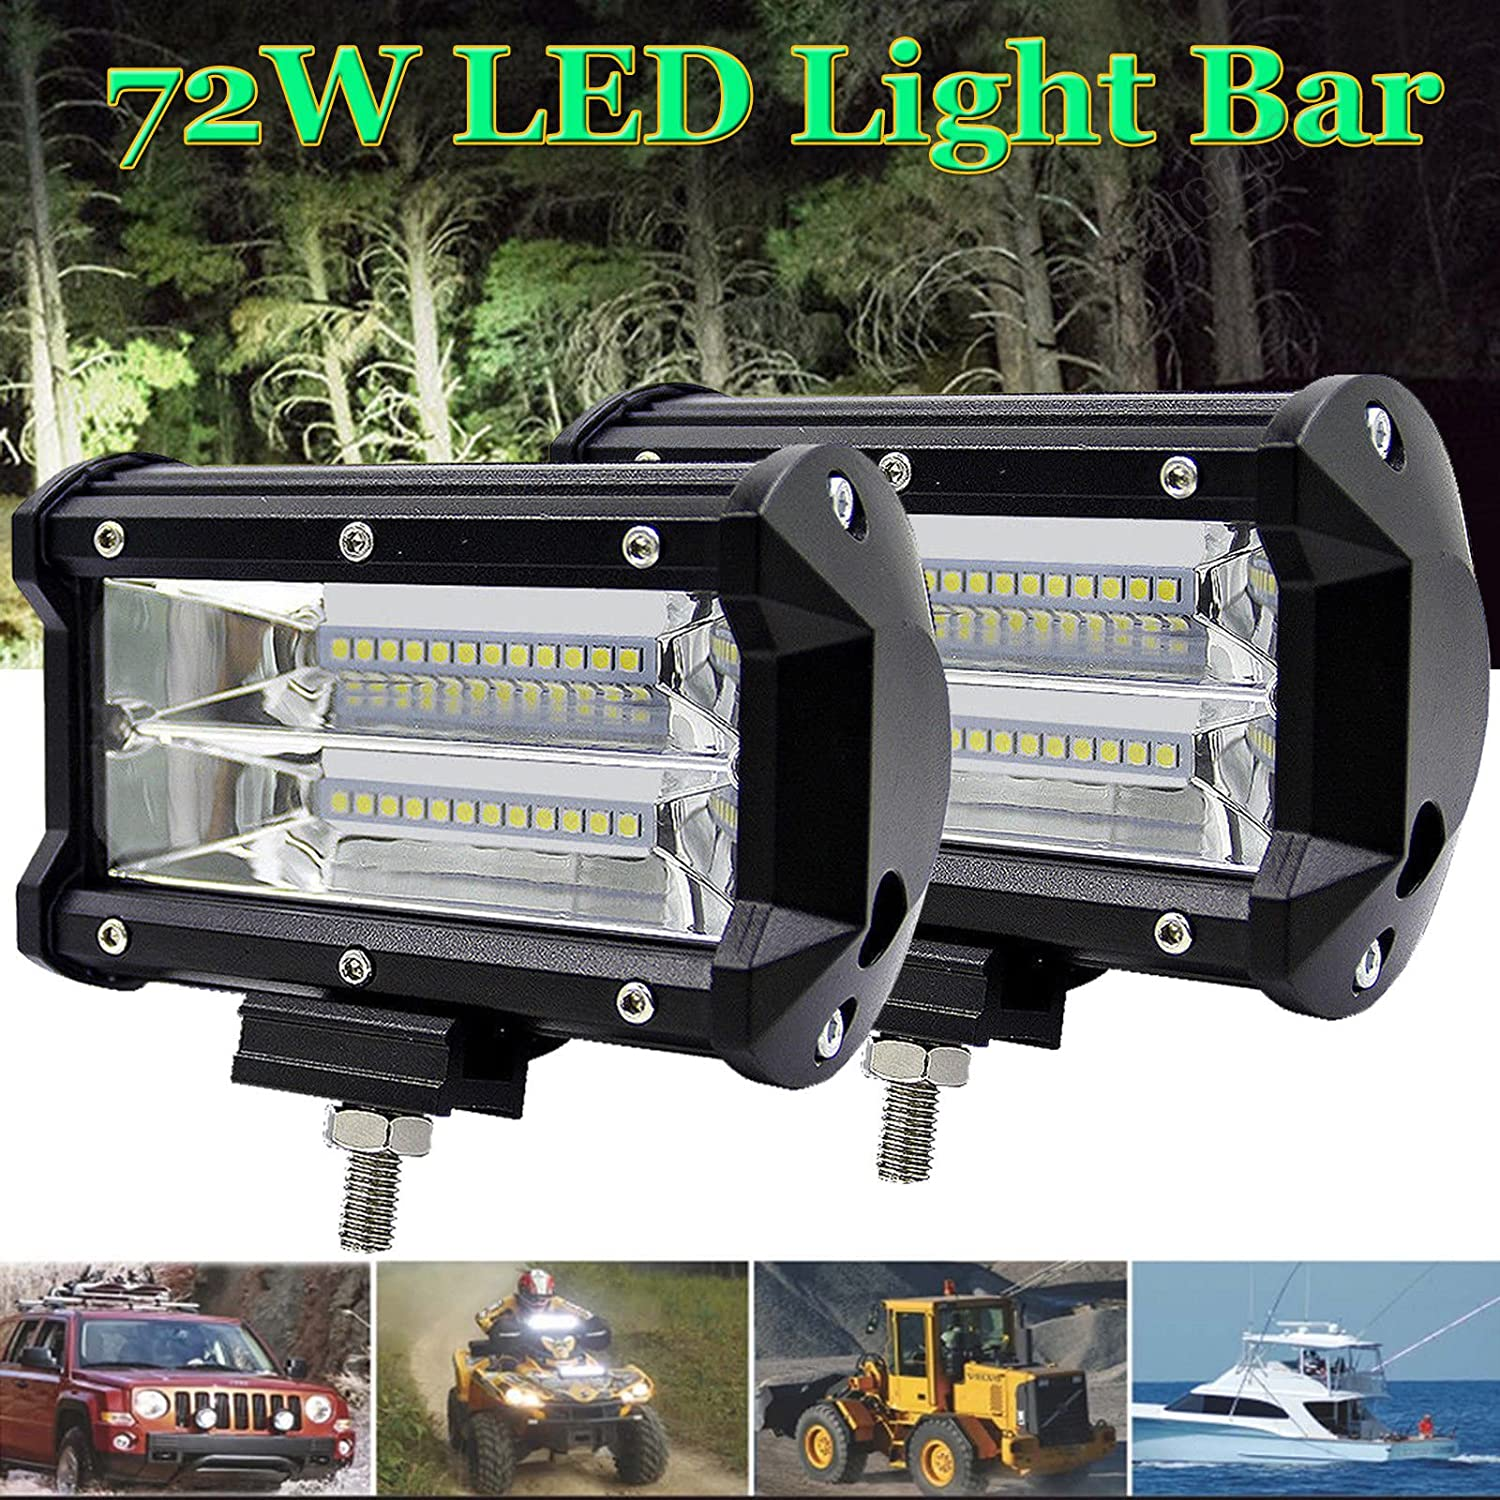 SUV Wagon Cab Spot Wide Beam 5 72W Bright White Driving Working Spotlight for Pickup Truck LED Work Lights Tractor LED Light Bars Offroad Truck 4WD 4X4 Bus Boat ATV